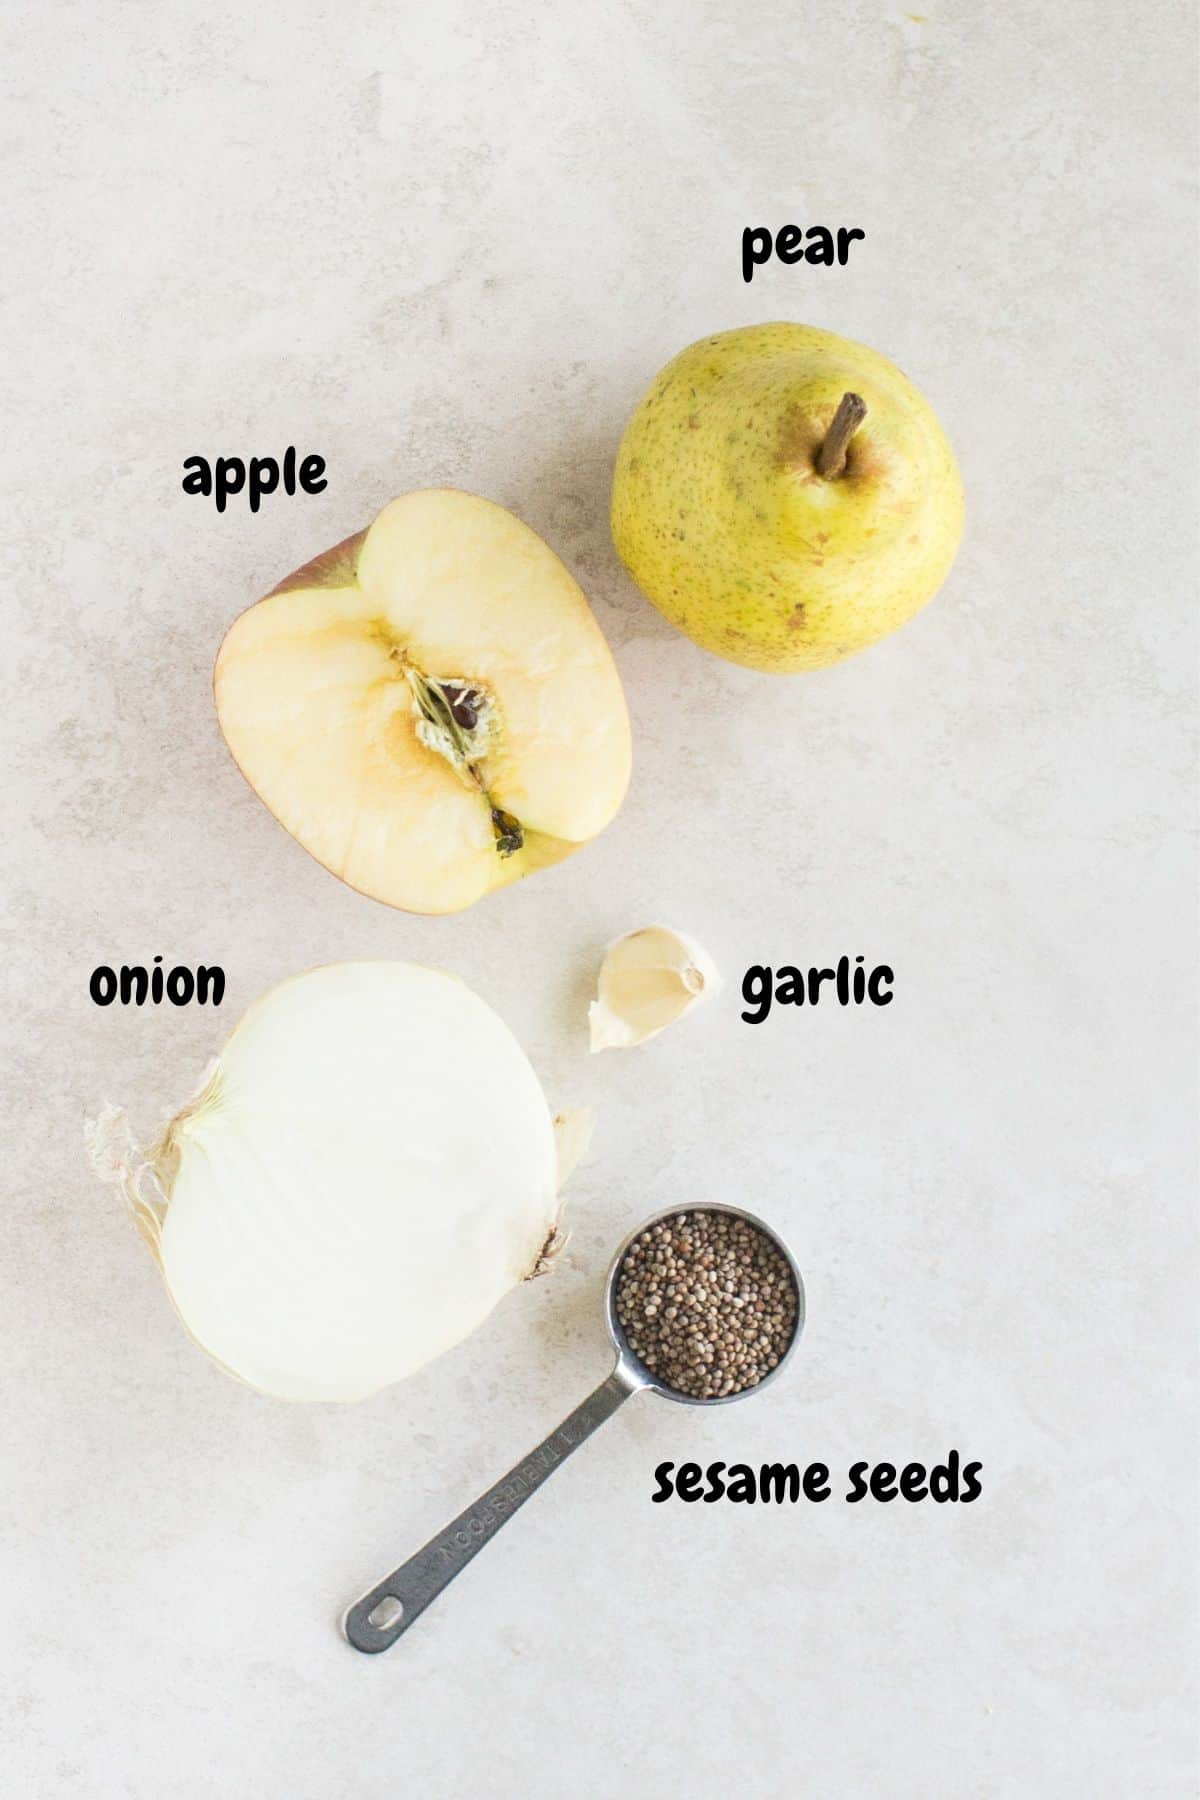 pear apple garlic onion and sesame seeds laid on a white background